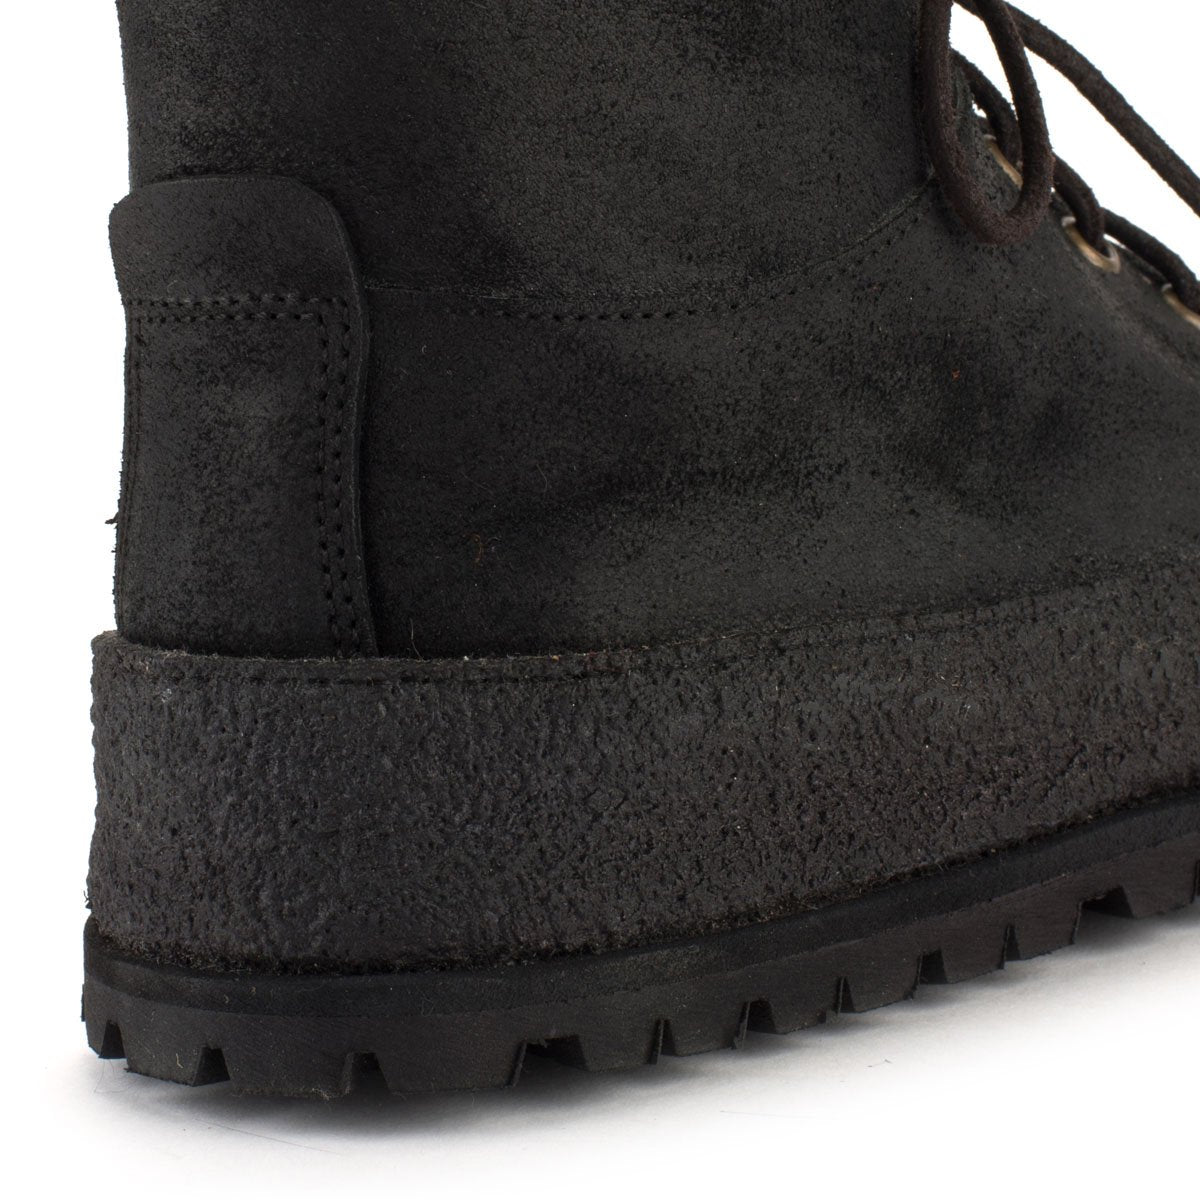 CR24 WATER PROOF SUEDE BOOTS – Black